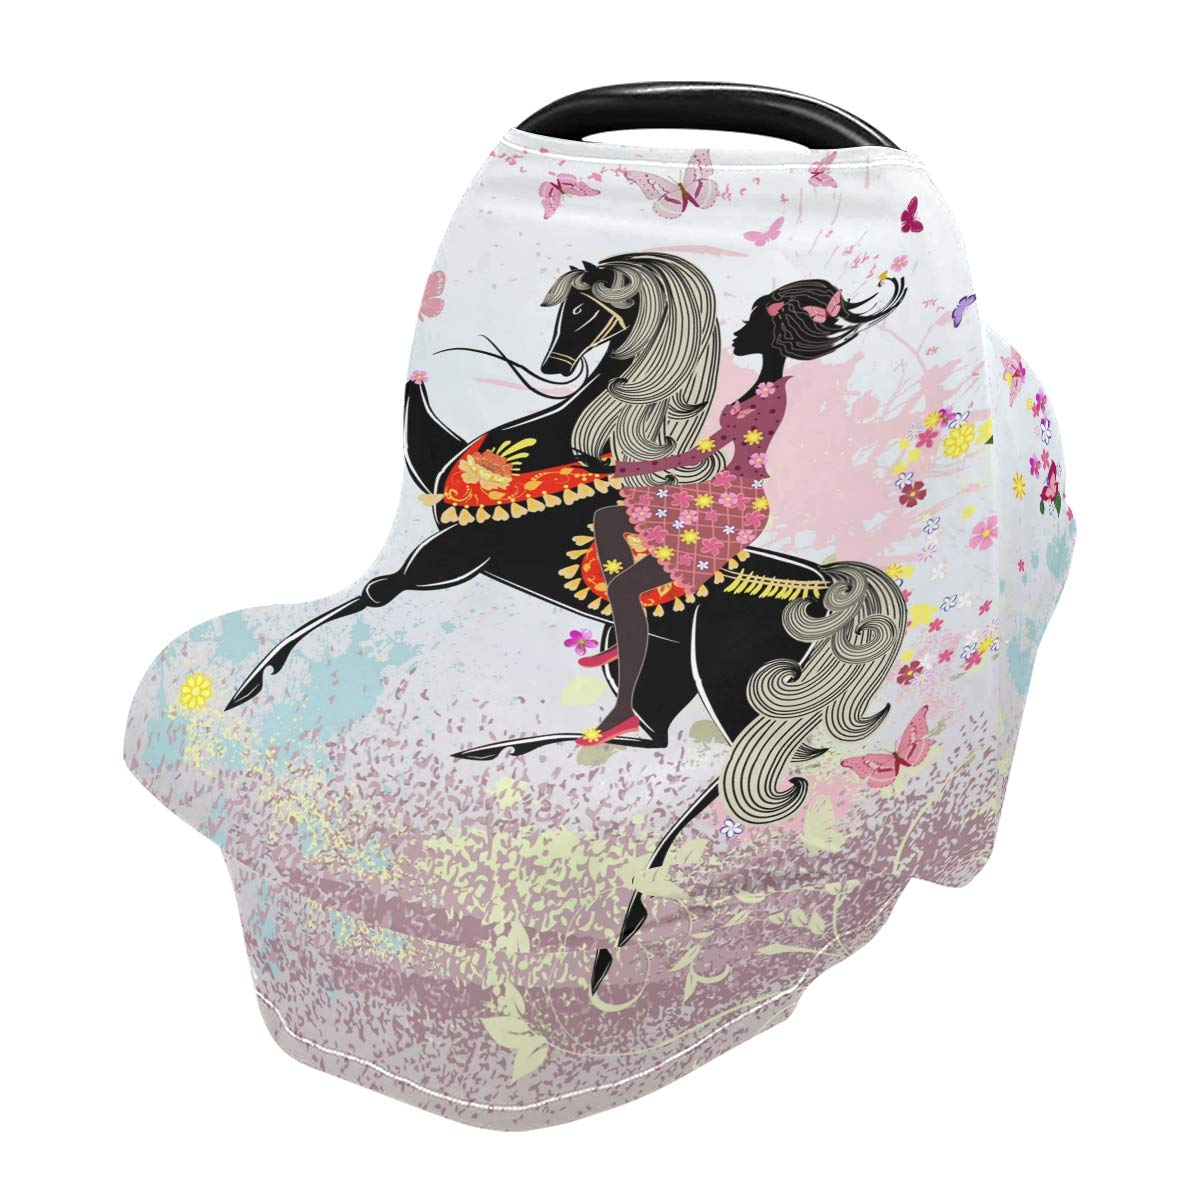 Baby Car Seat Cover Girl with Butterflies Nursing Covers Breastfeeding Scarf Infant Carseat Canopy for Mom Baby Gift